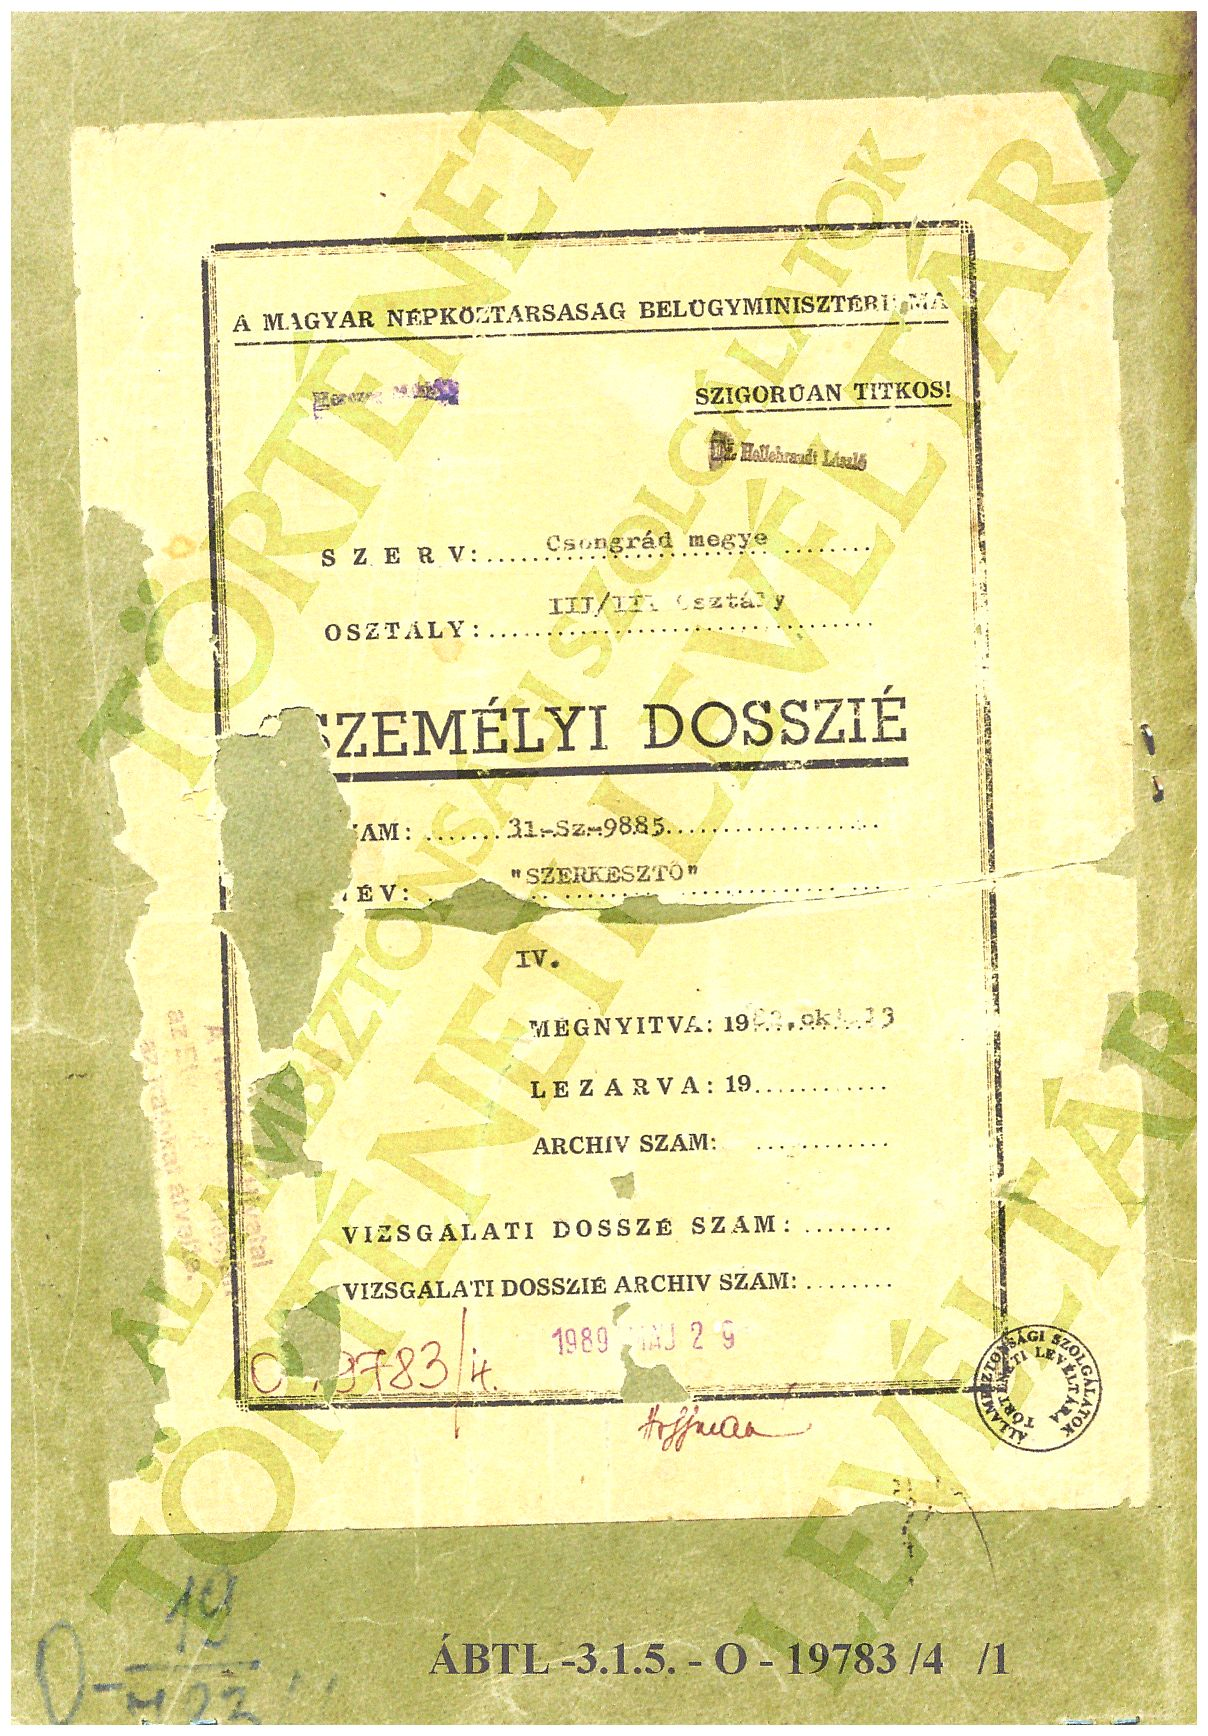 Hungarian Secret Agency dossier from 1978